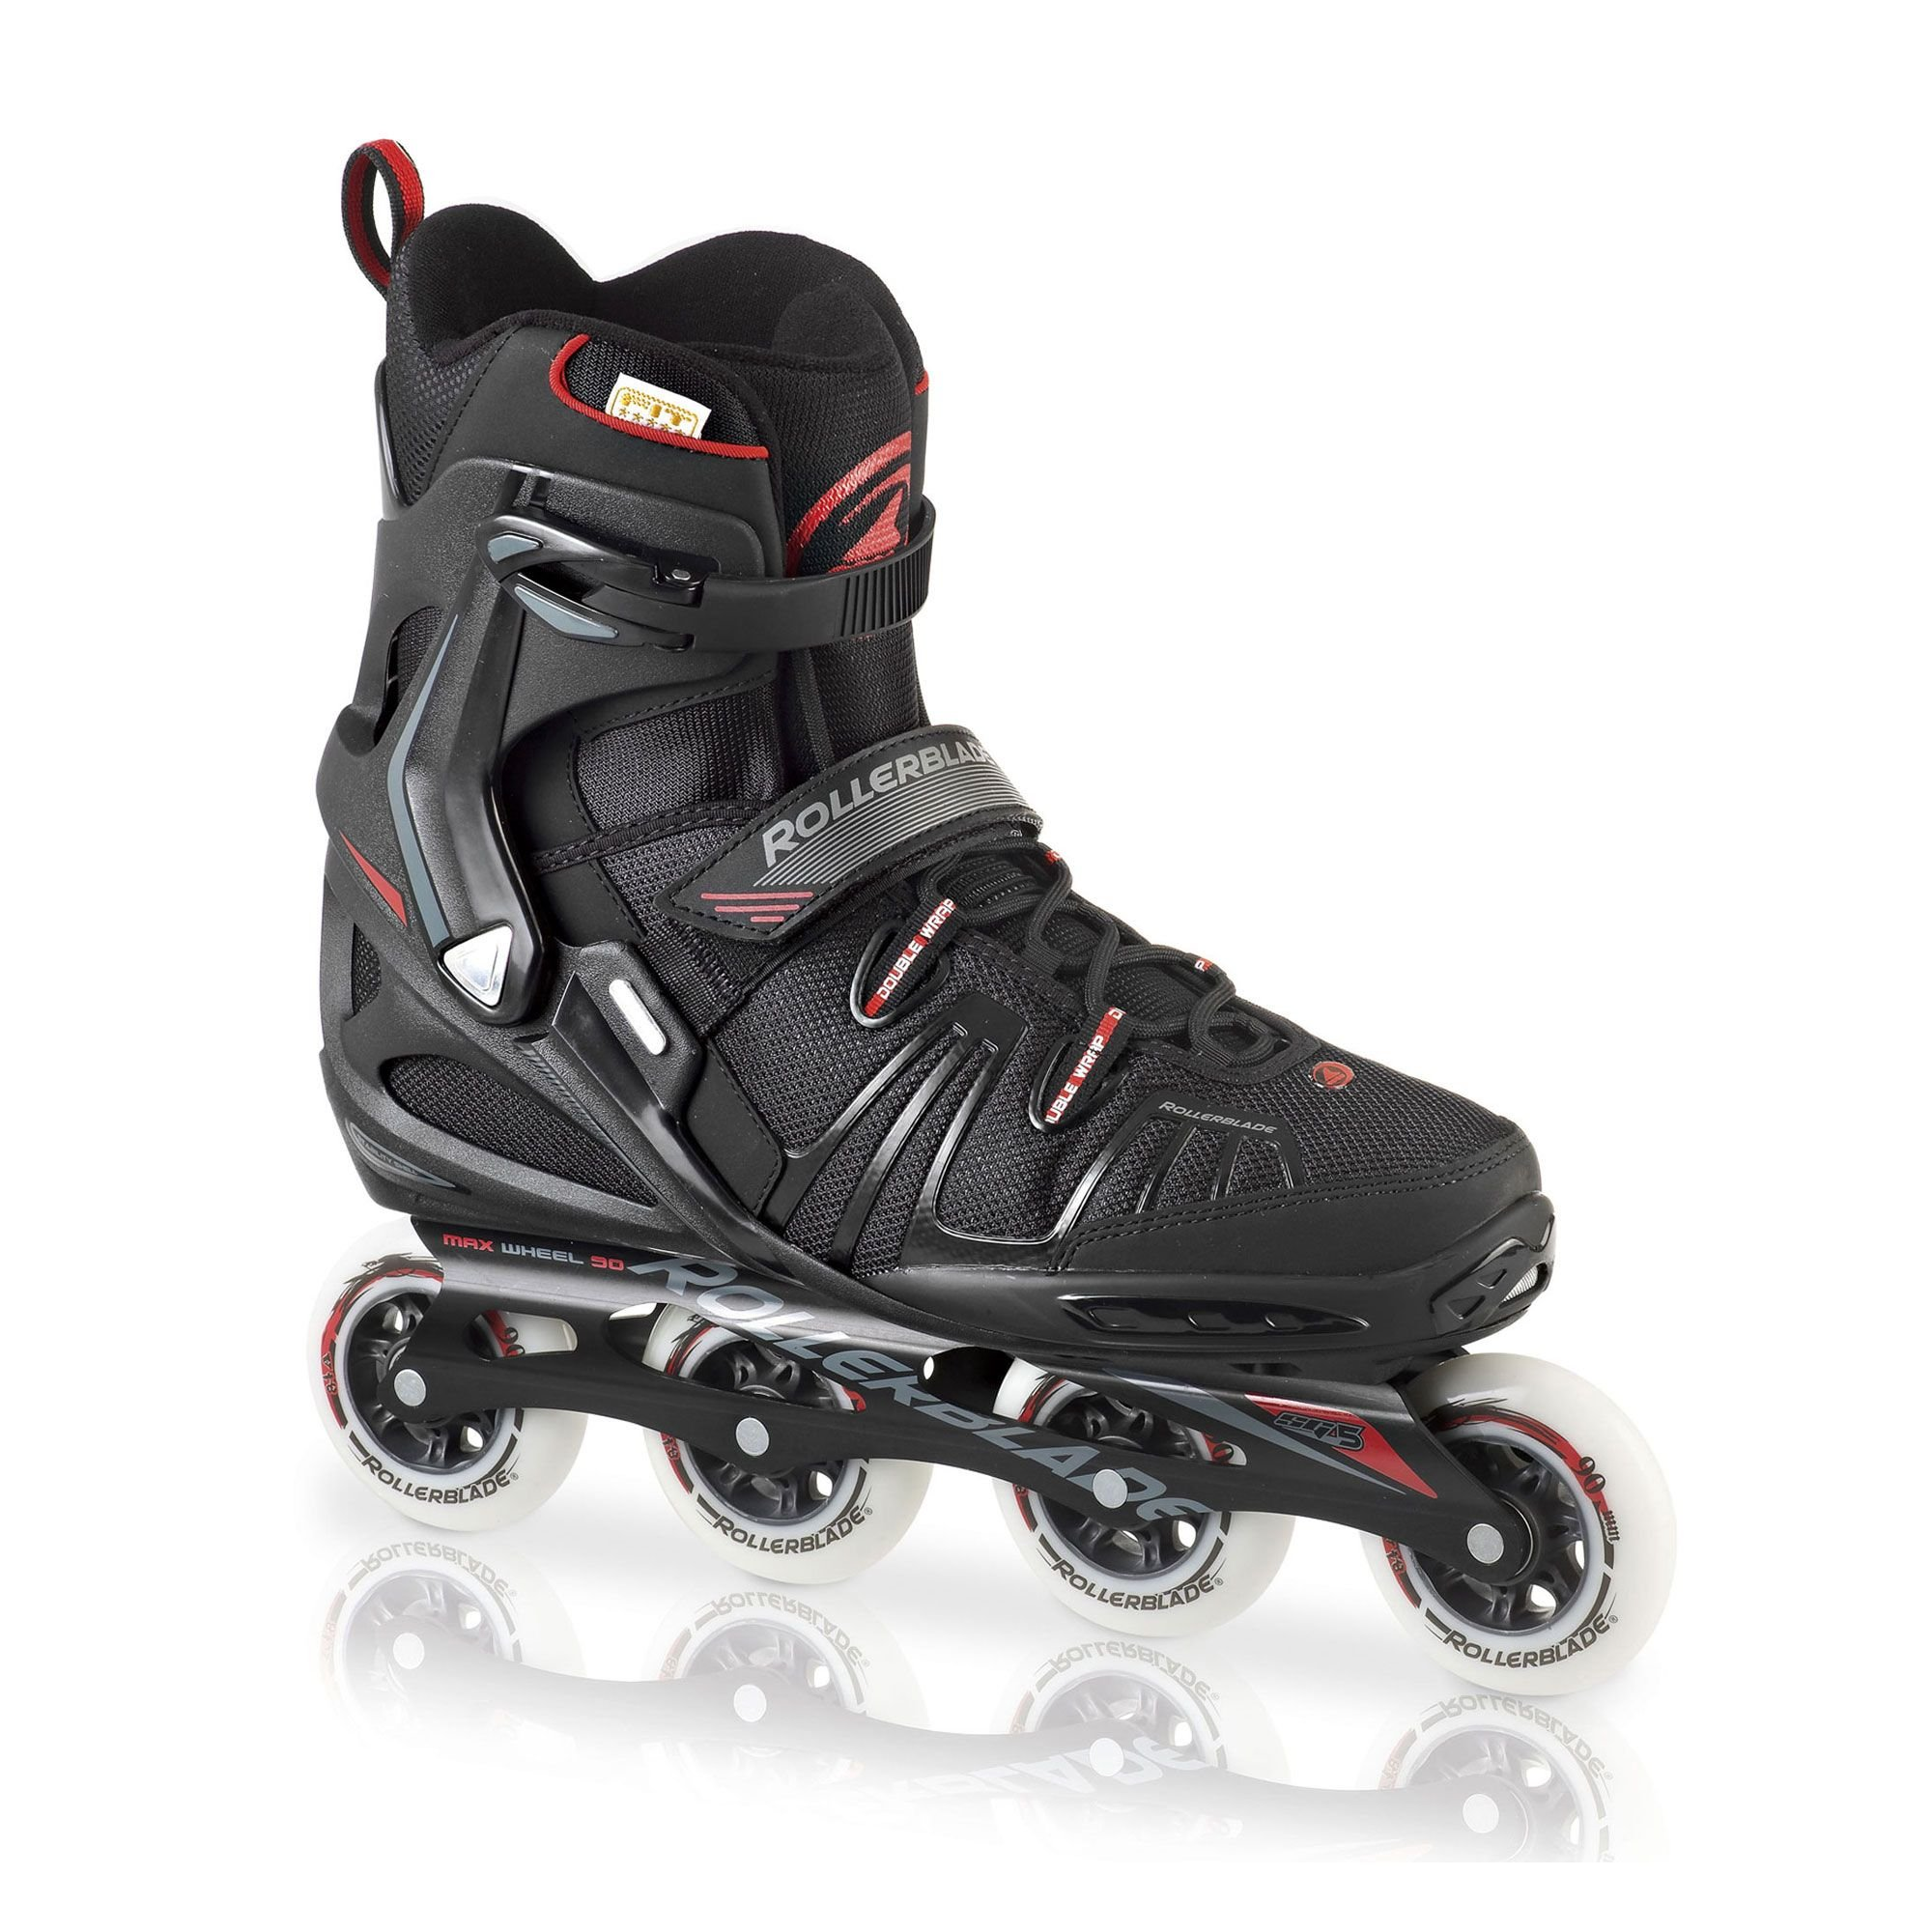 Rollerblade RB XL Skates Black 35.5 & Headband Bundle